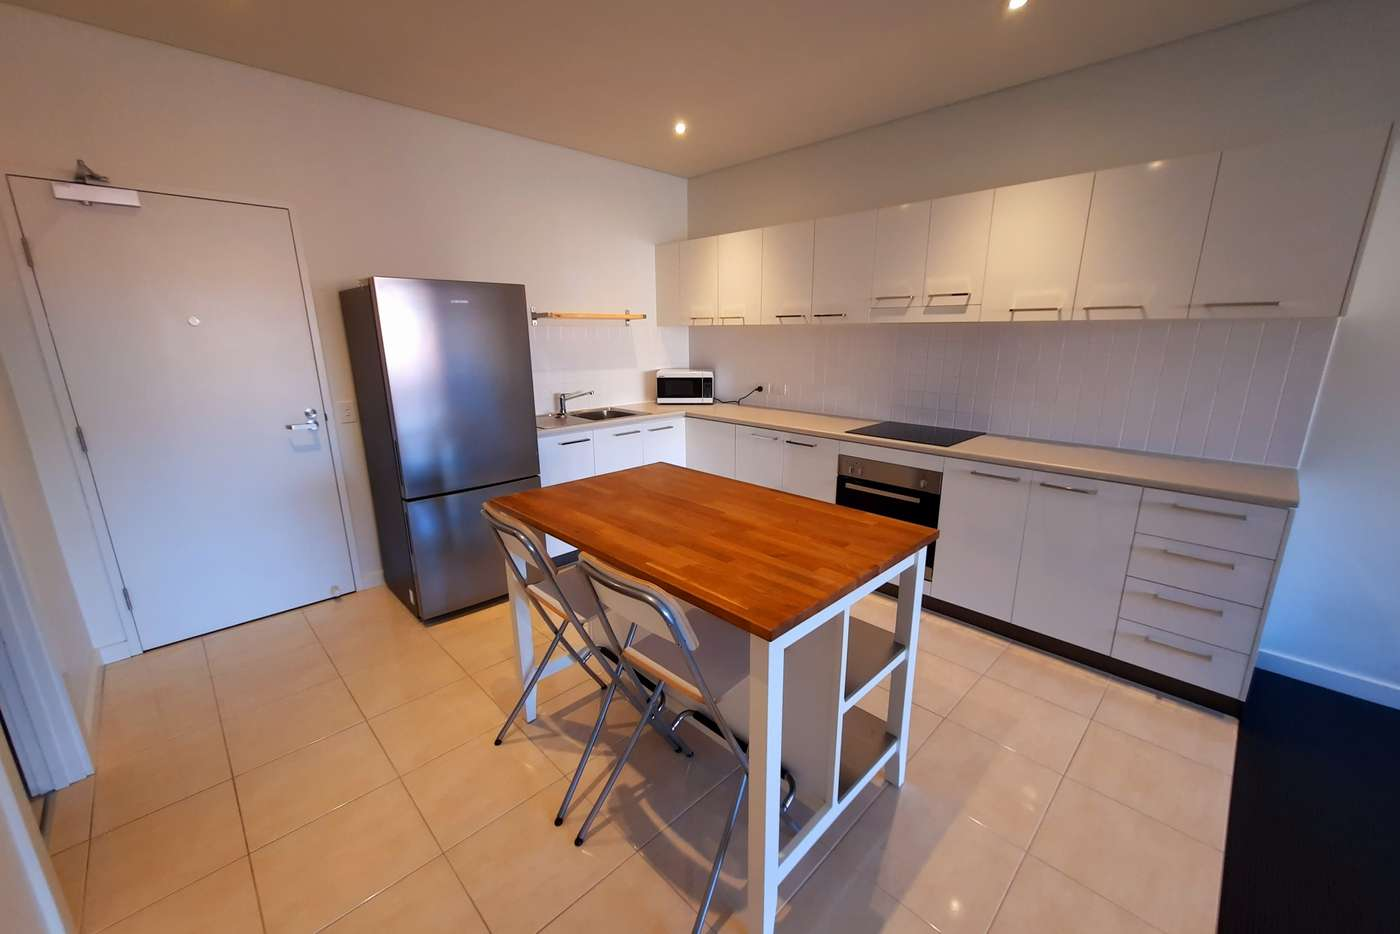 Main view of Homely apartment listing, 303/23 Frew Street, Adelaide SA 5000